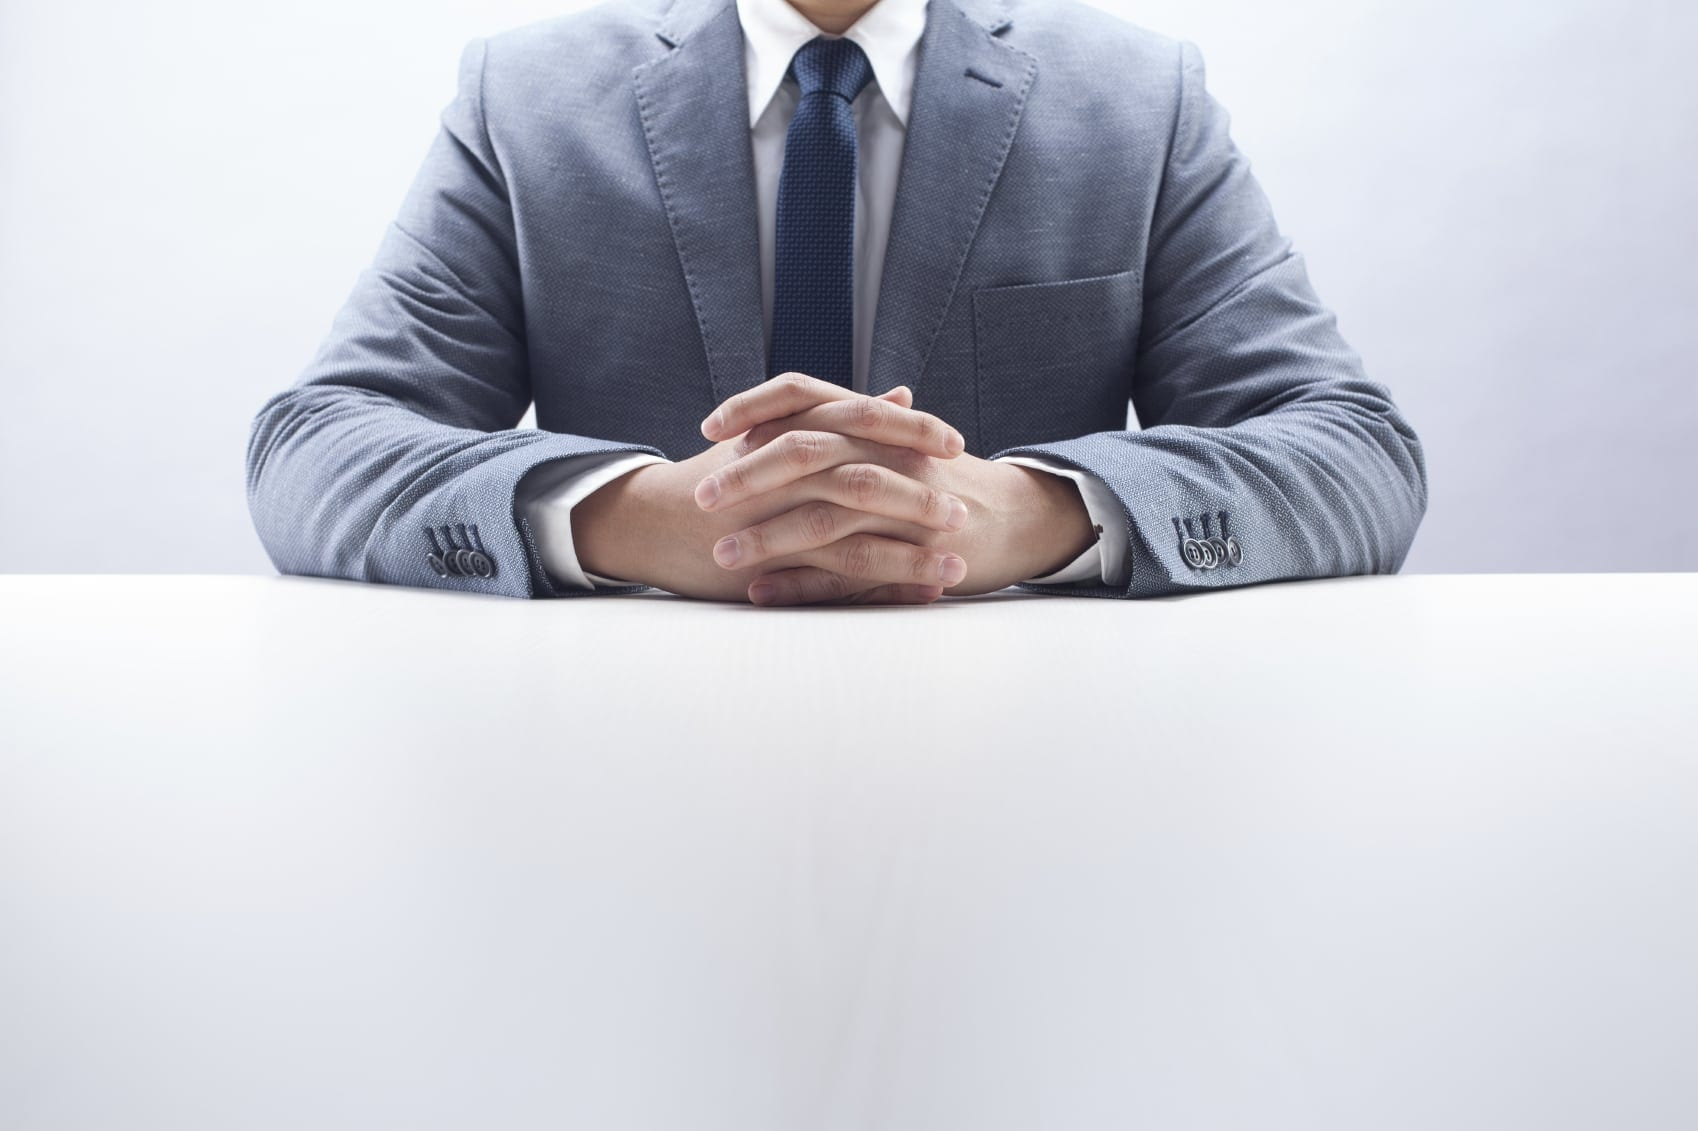 Lawyer In A Nice Suit Sitting By Himself Stock Photo